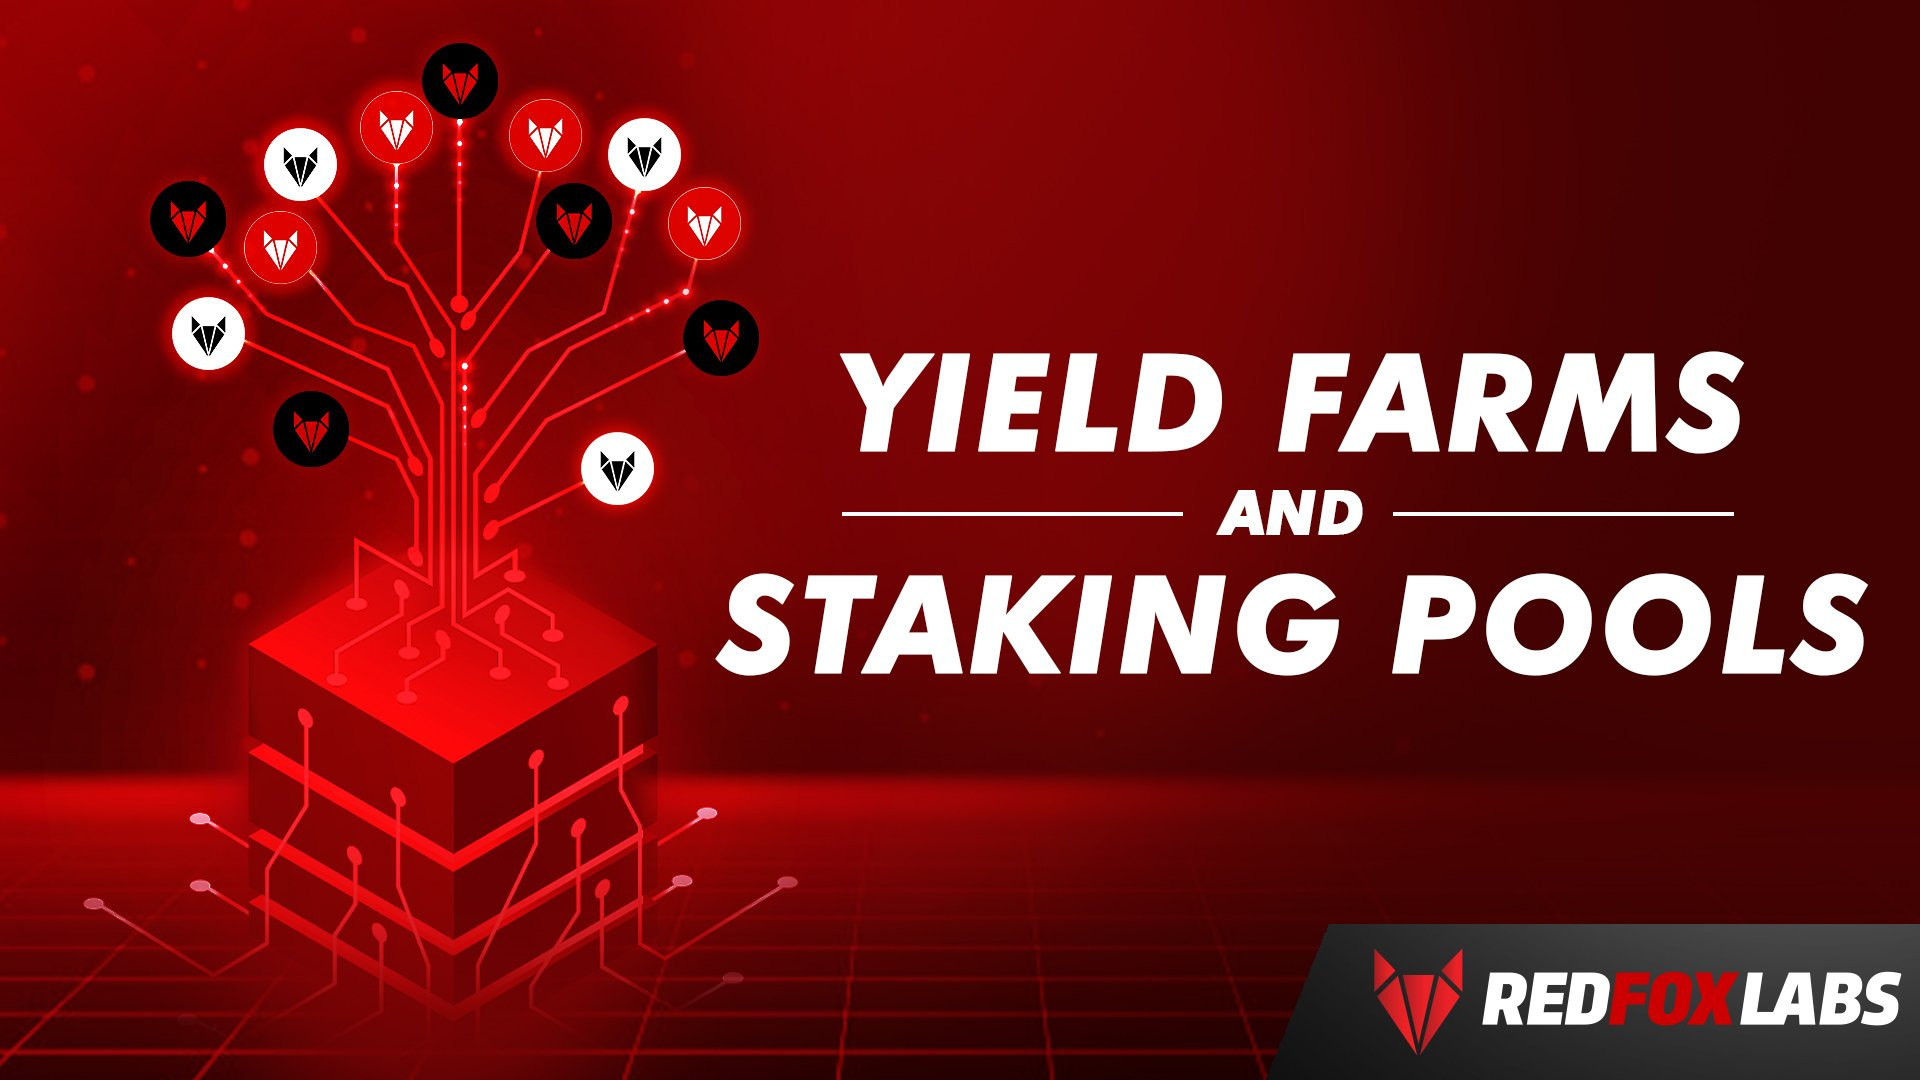 How Yield Farms & Staking Pools Generate Seemingly Impossible Returns